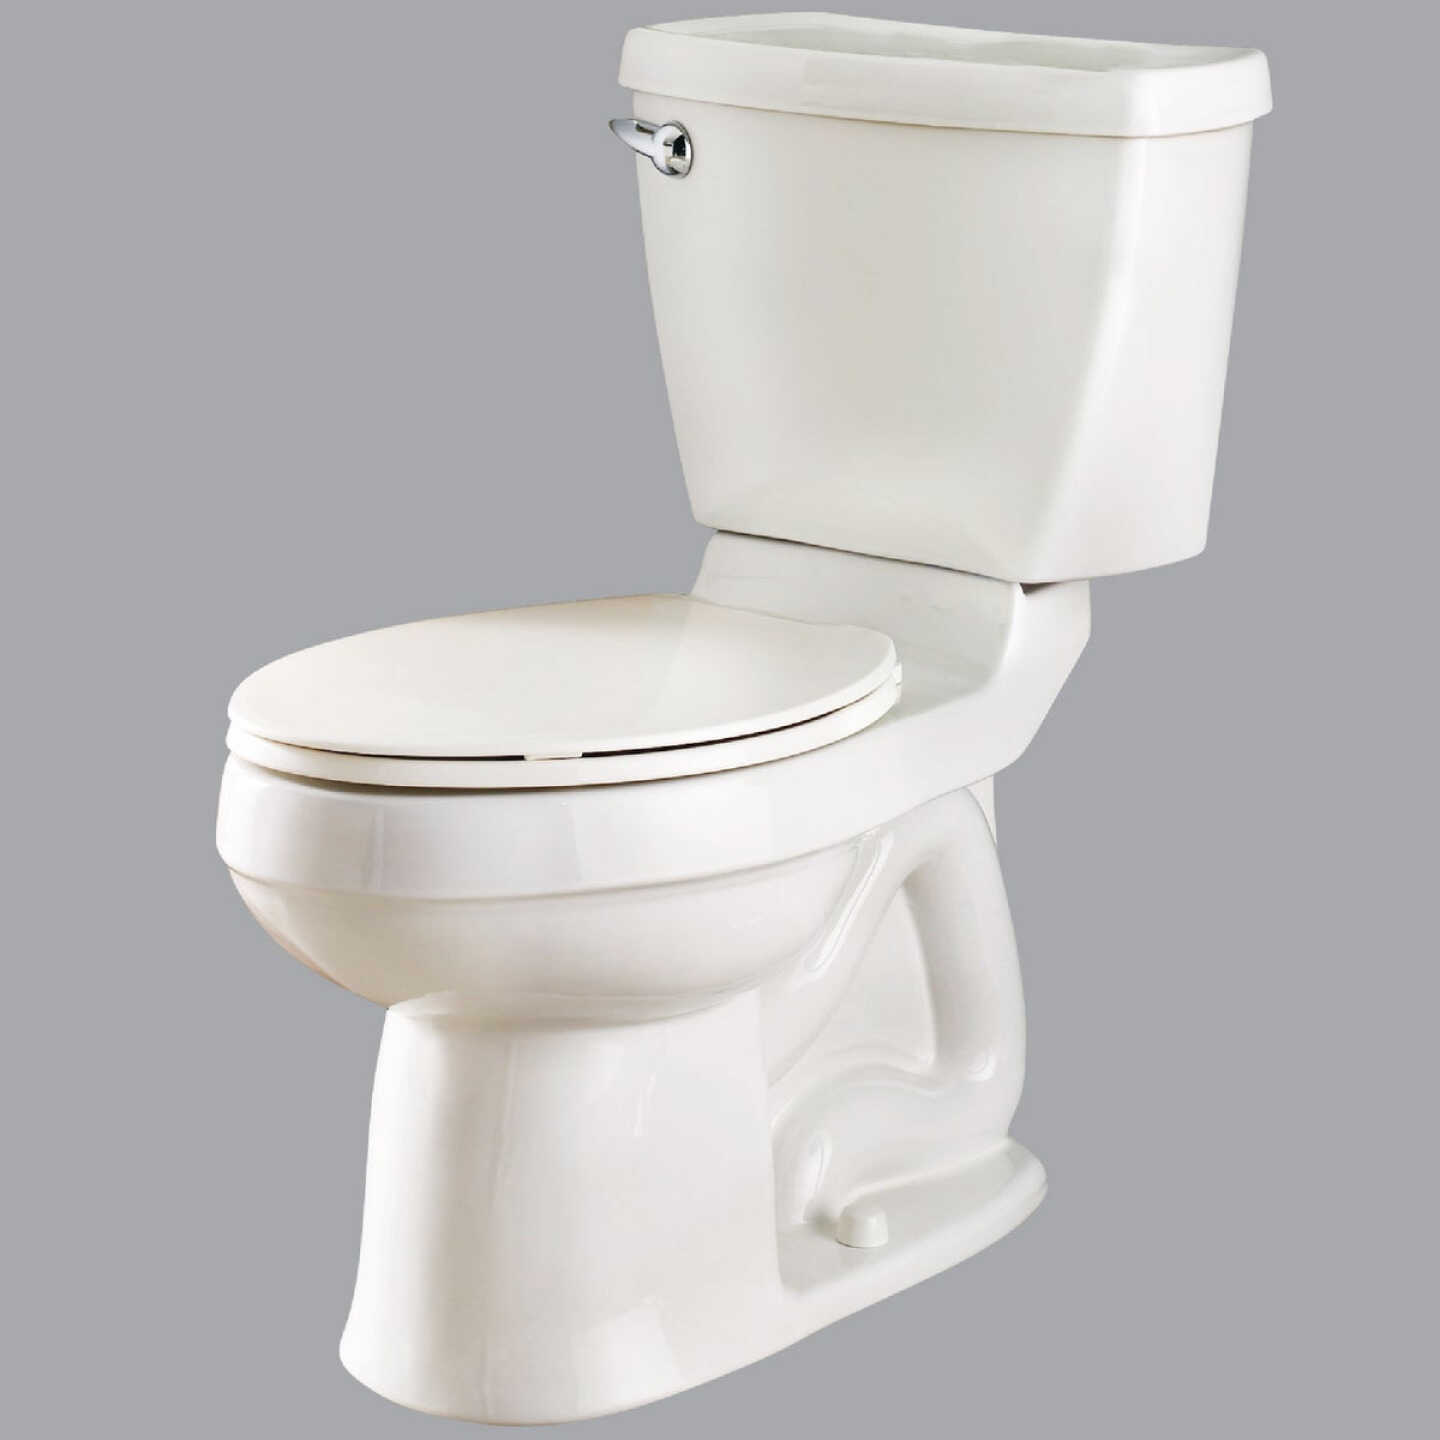 American Standard Champion 4 Right Height White Elongated Bowl 1.6 GPF Toilet Image 1